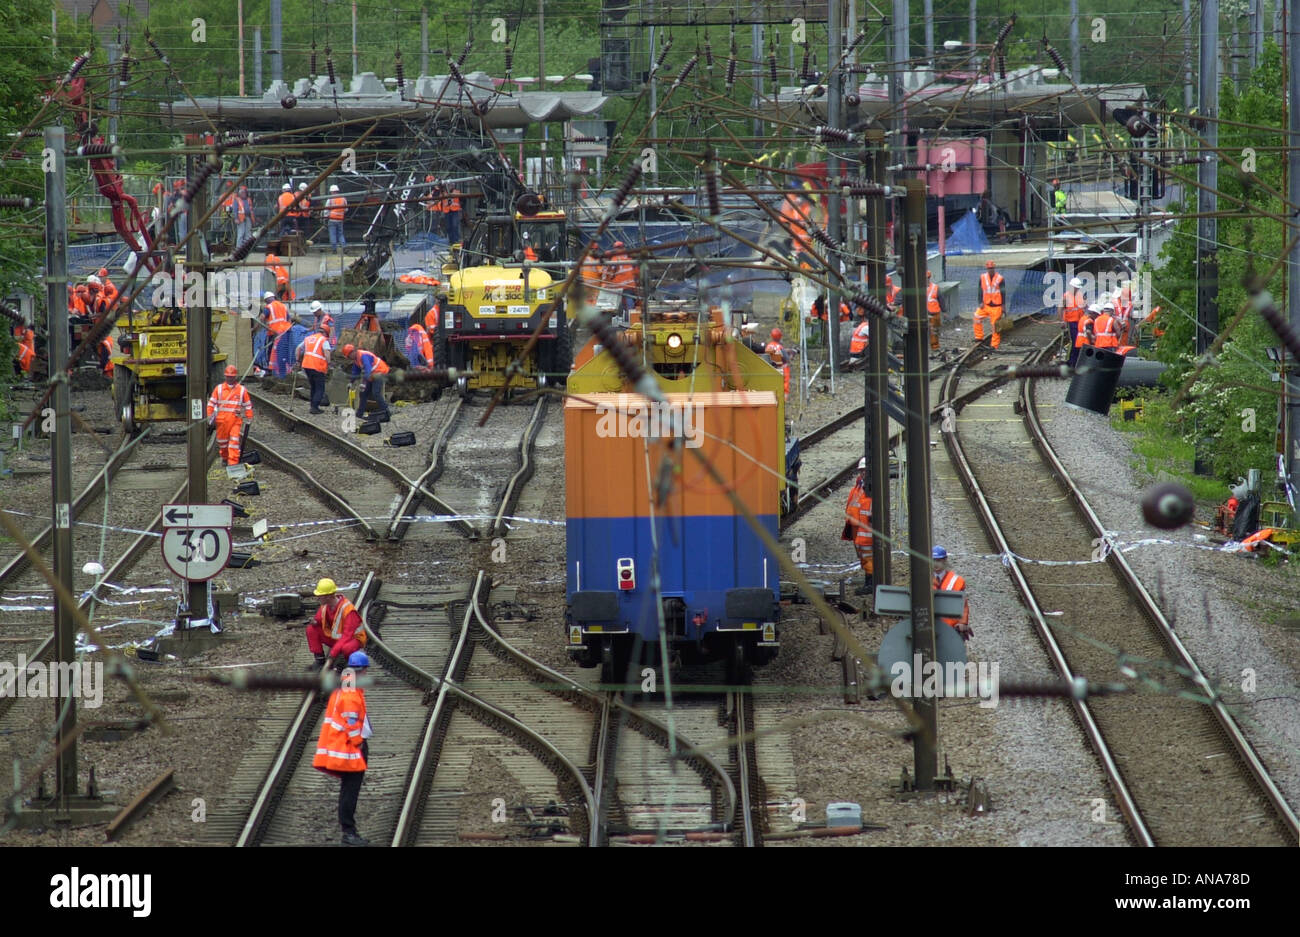 Engineers work to mend the main line track after the Potters Bar rail crash UK - Stock Image